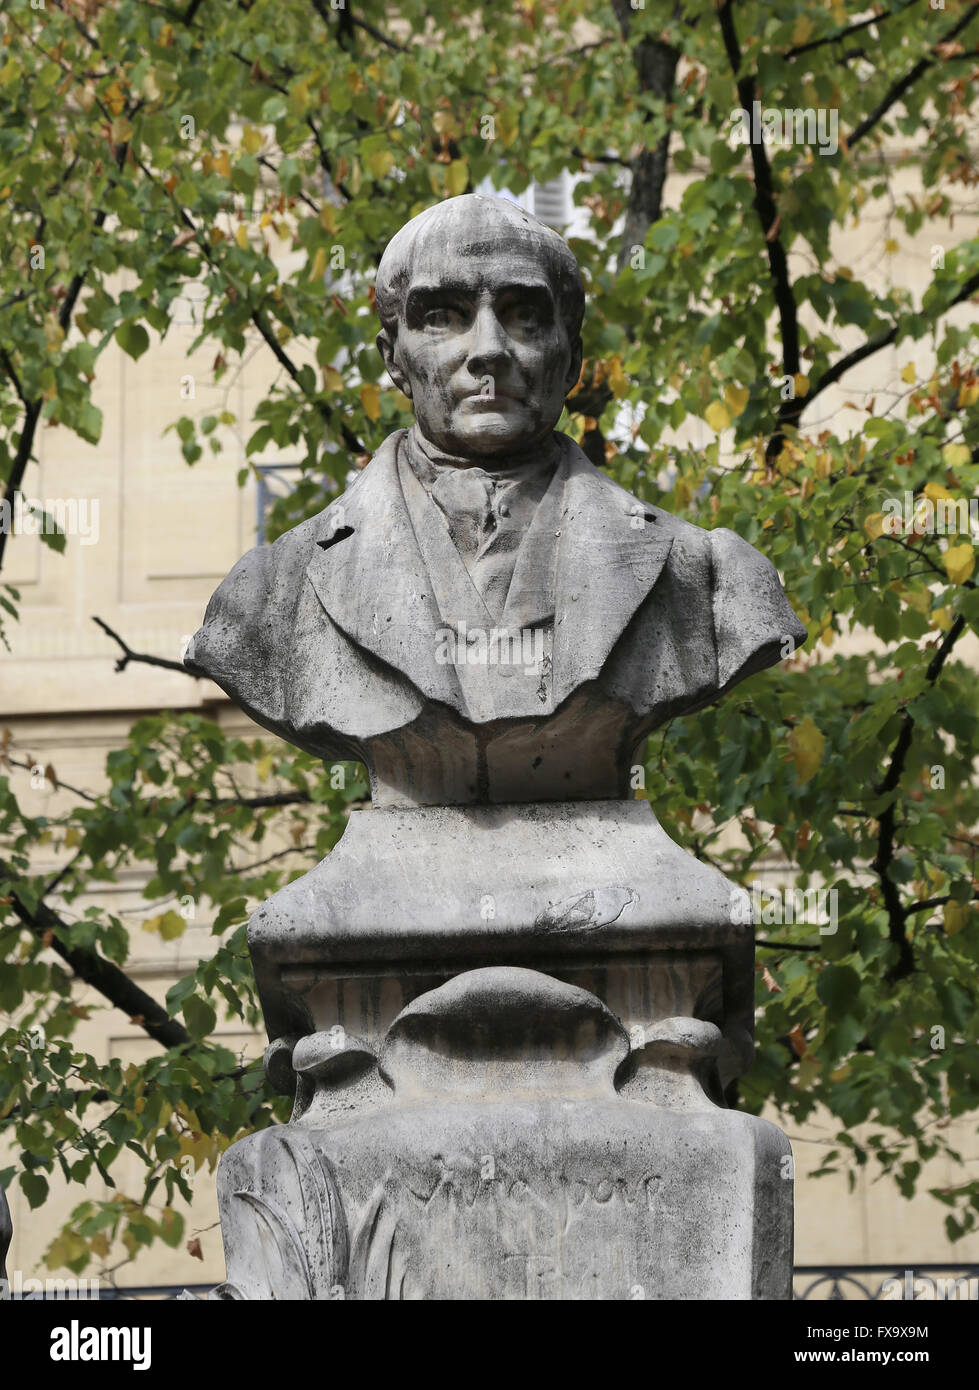 Bust of Auguste Compte (1789-1857). By Jean-Antoine Injalbert, 1902.  Place Sorbonne. Paris. France. - Stock Image